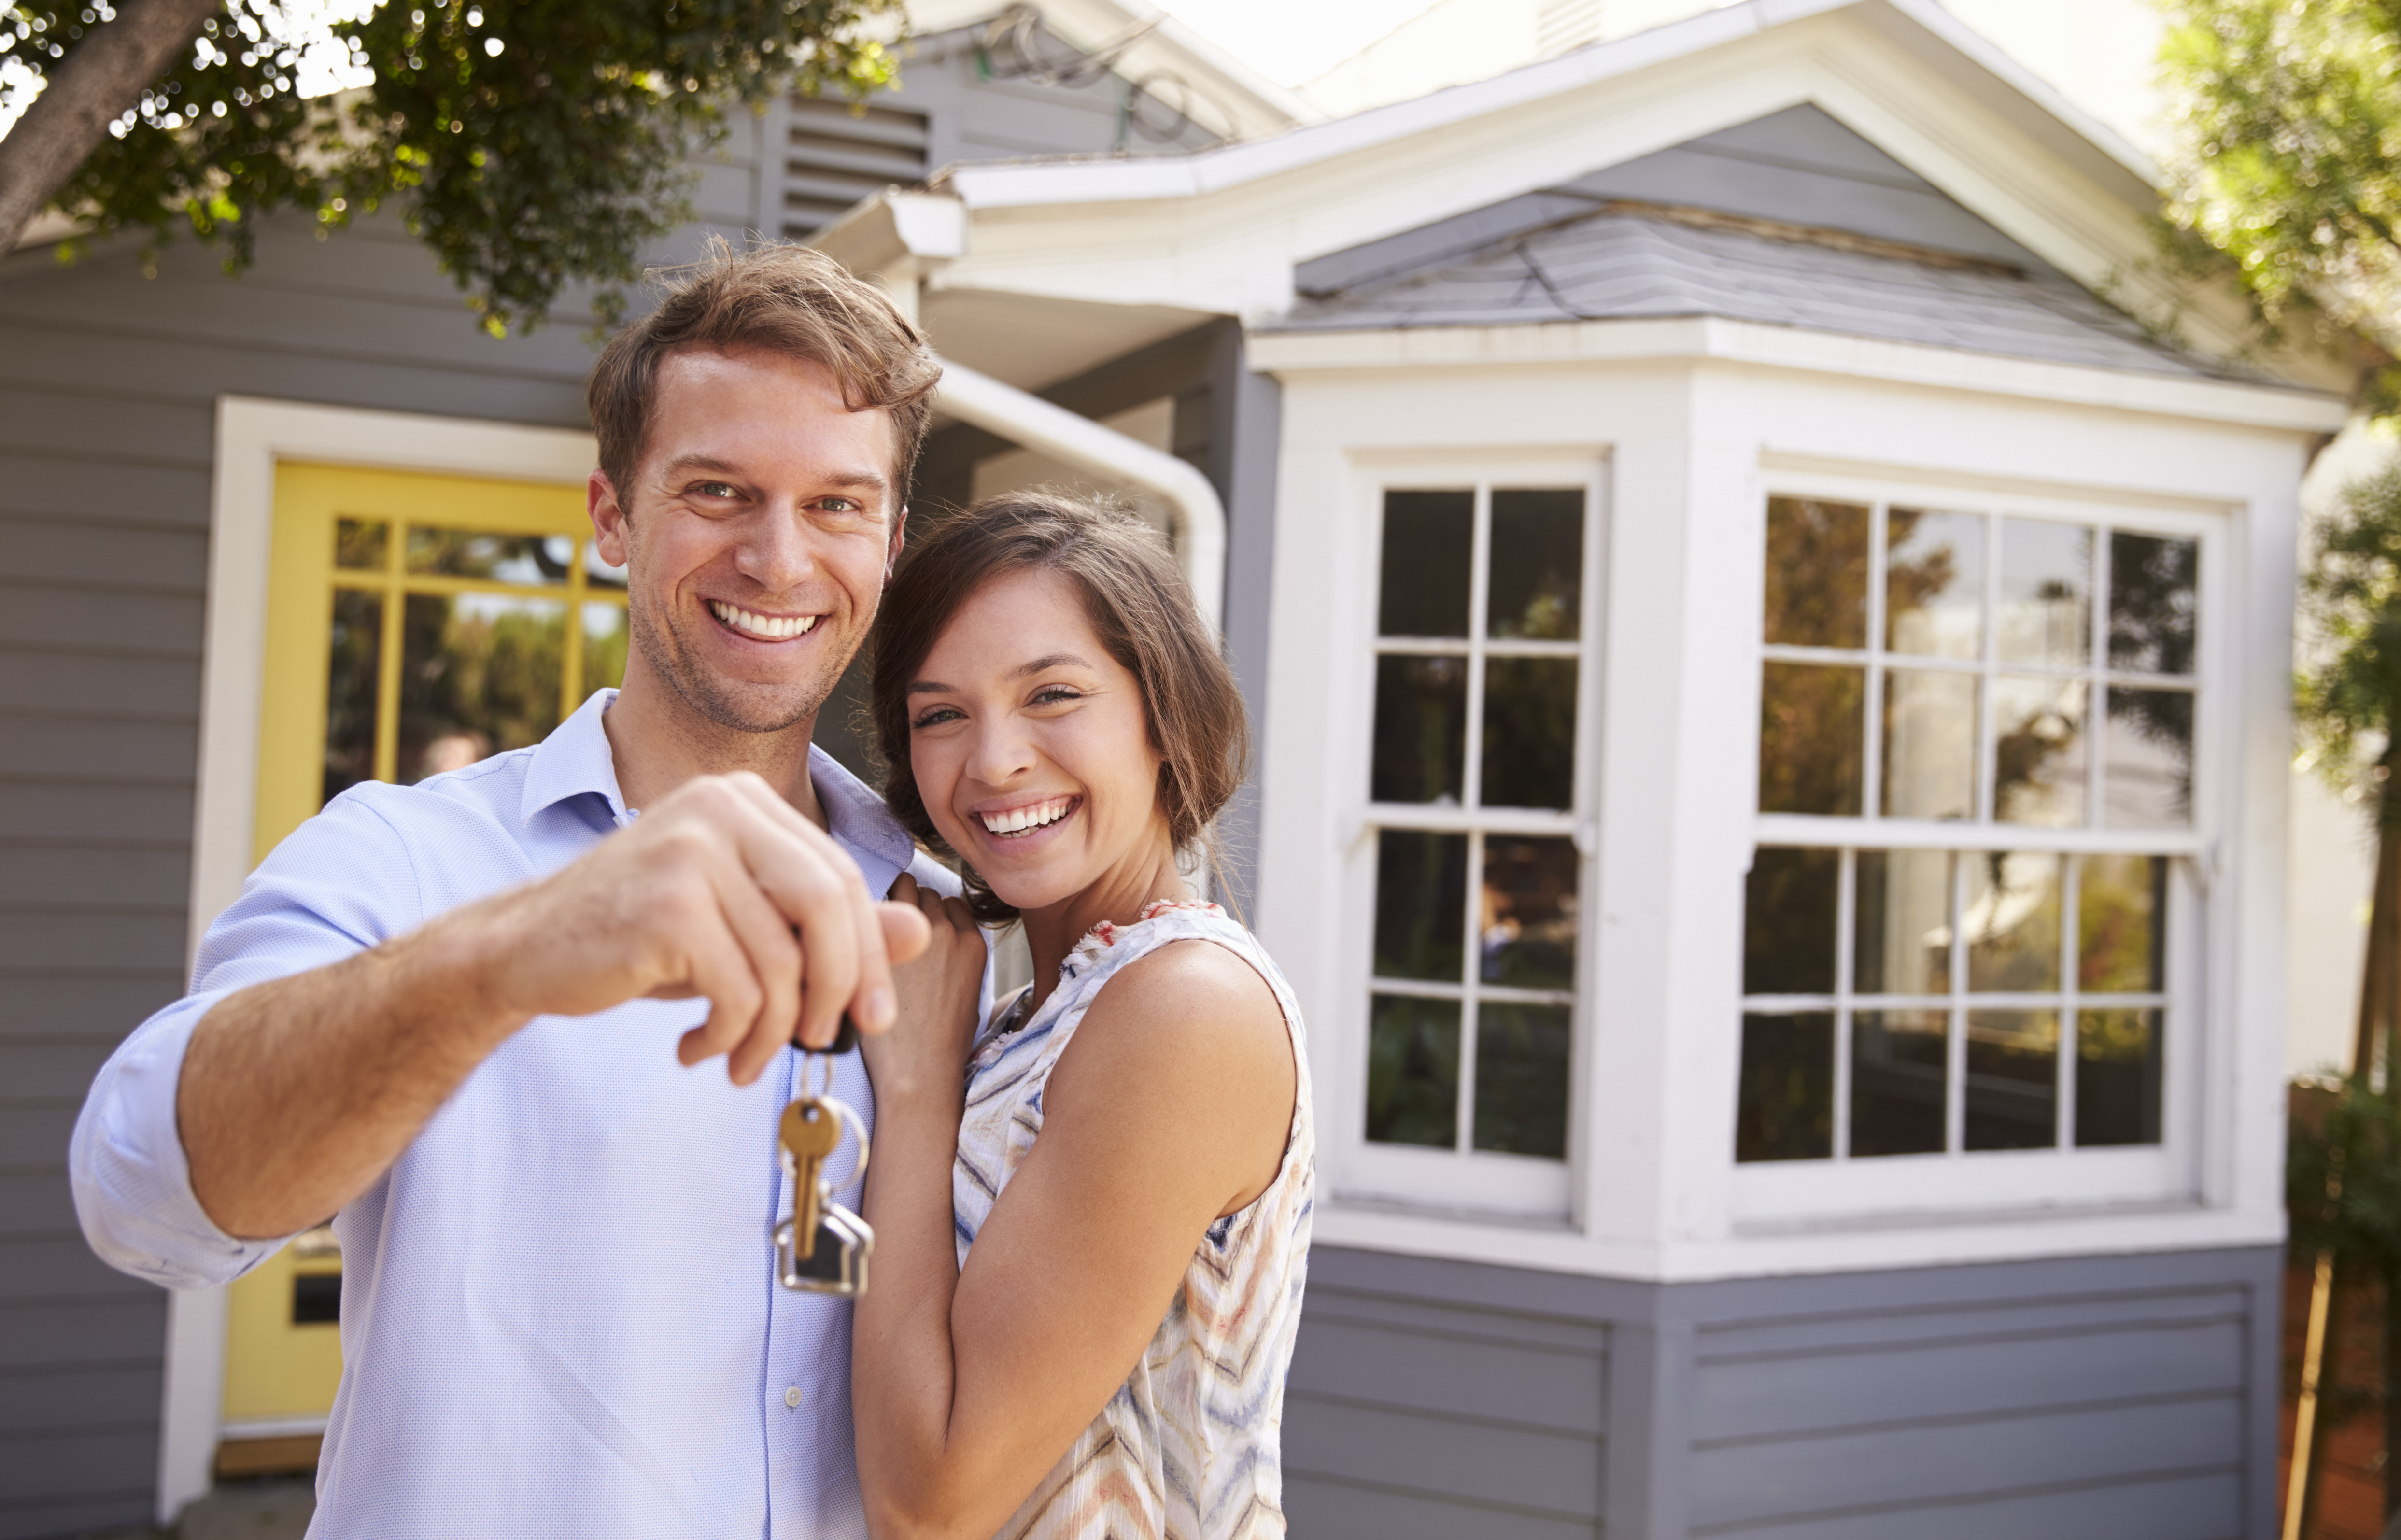 A young happy couple holding out keys while standing in front of their new home